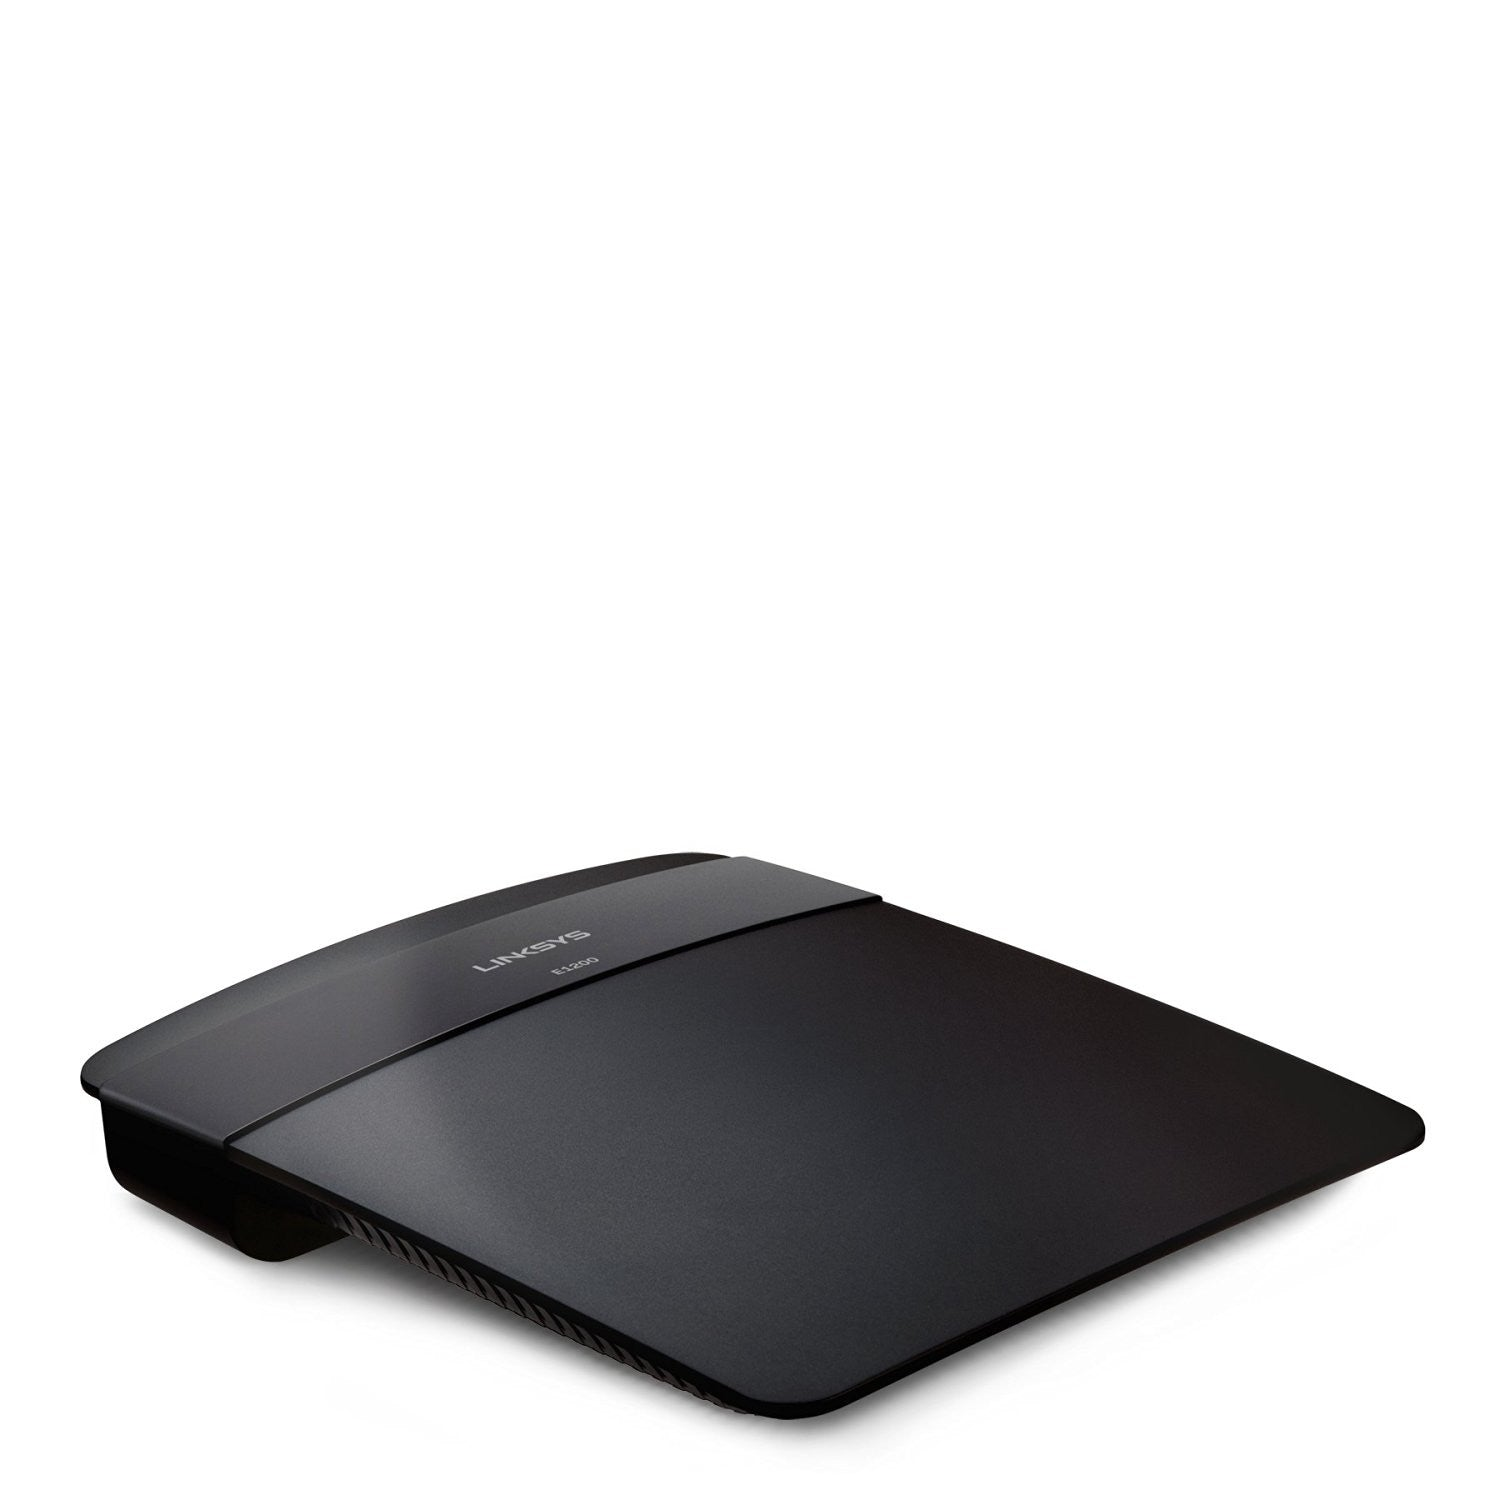 Mullvad VPN Router Linksys N300 Flashed with Tomato Firmware Top View